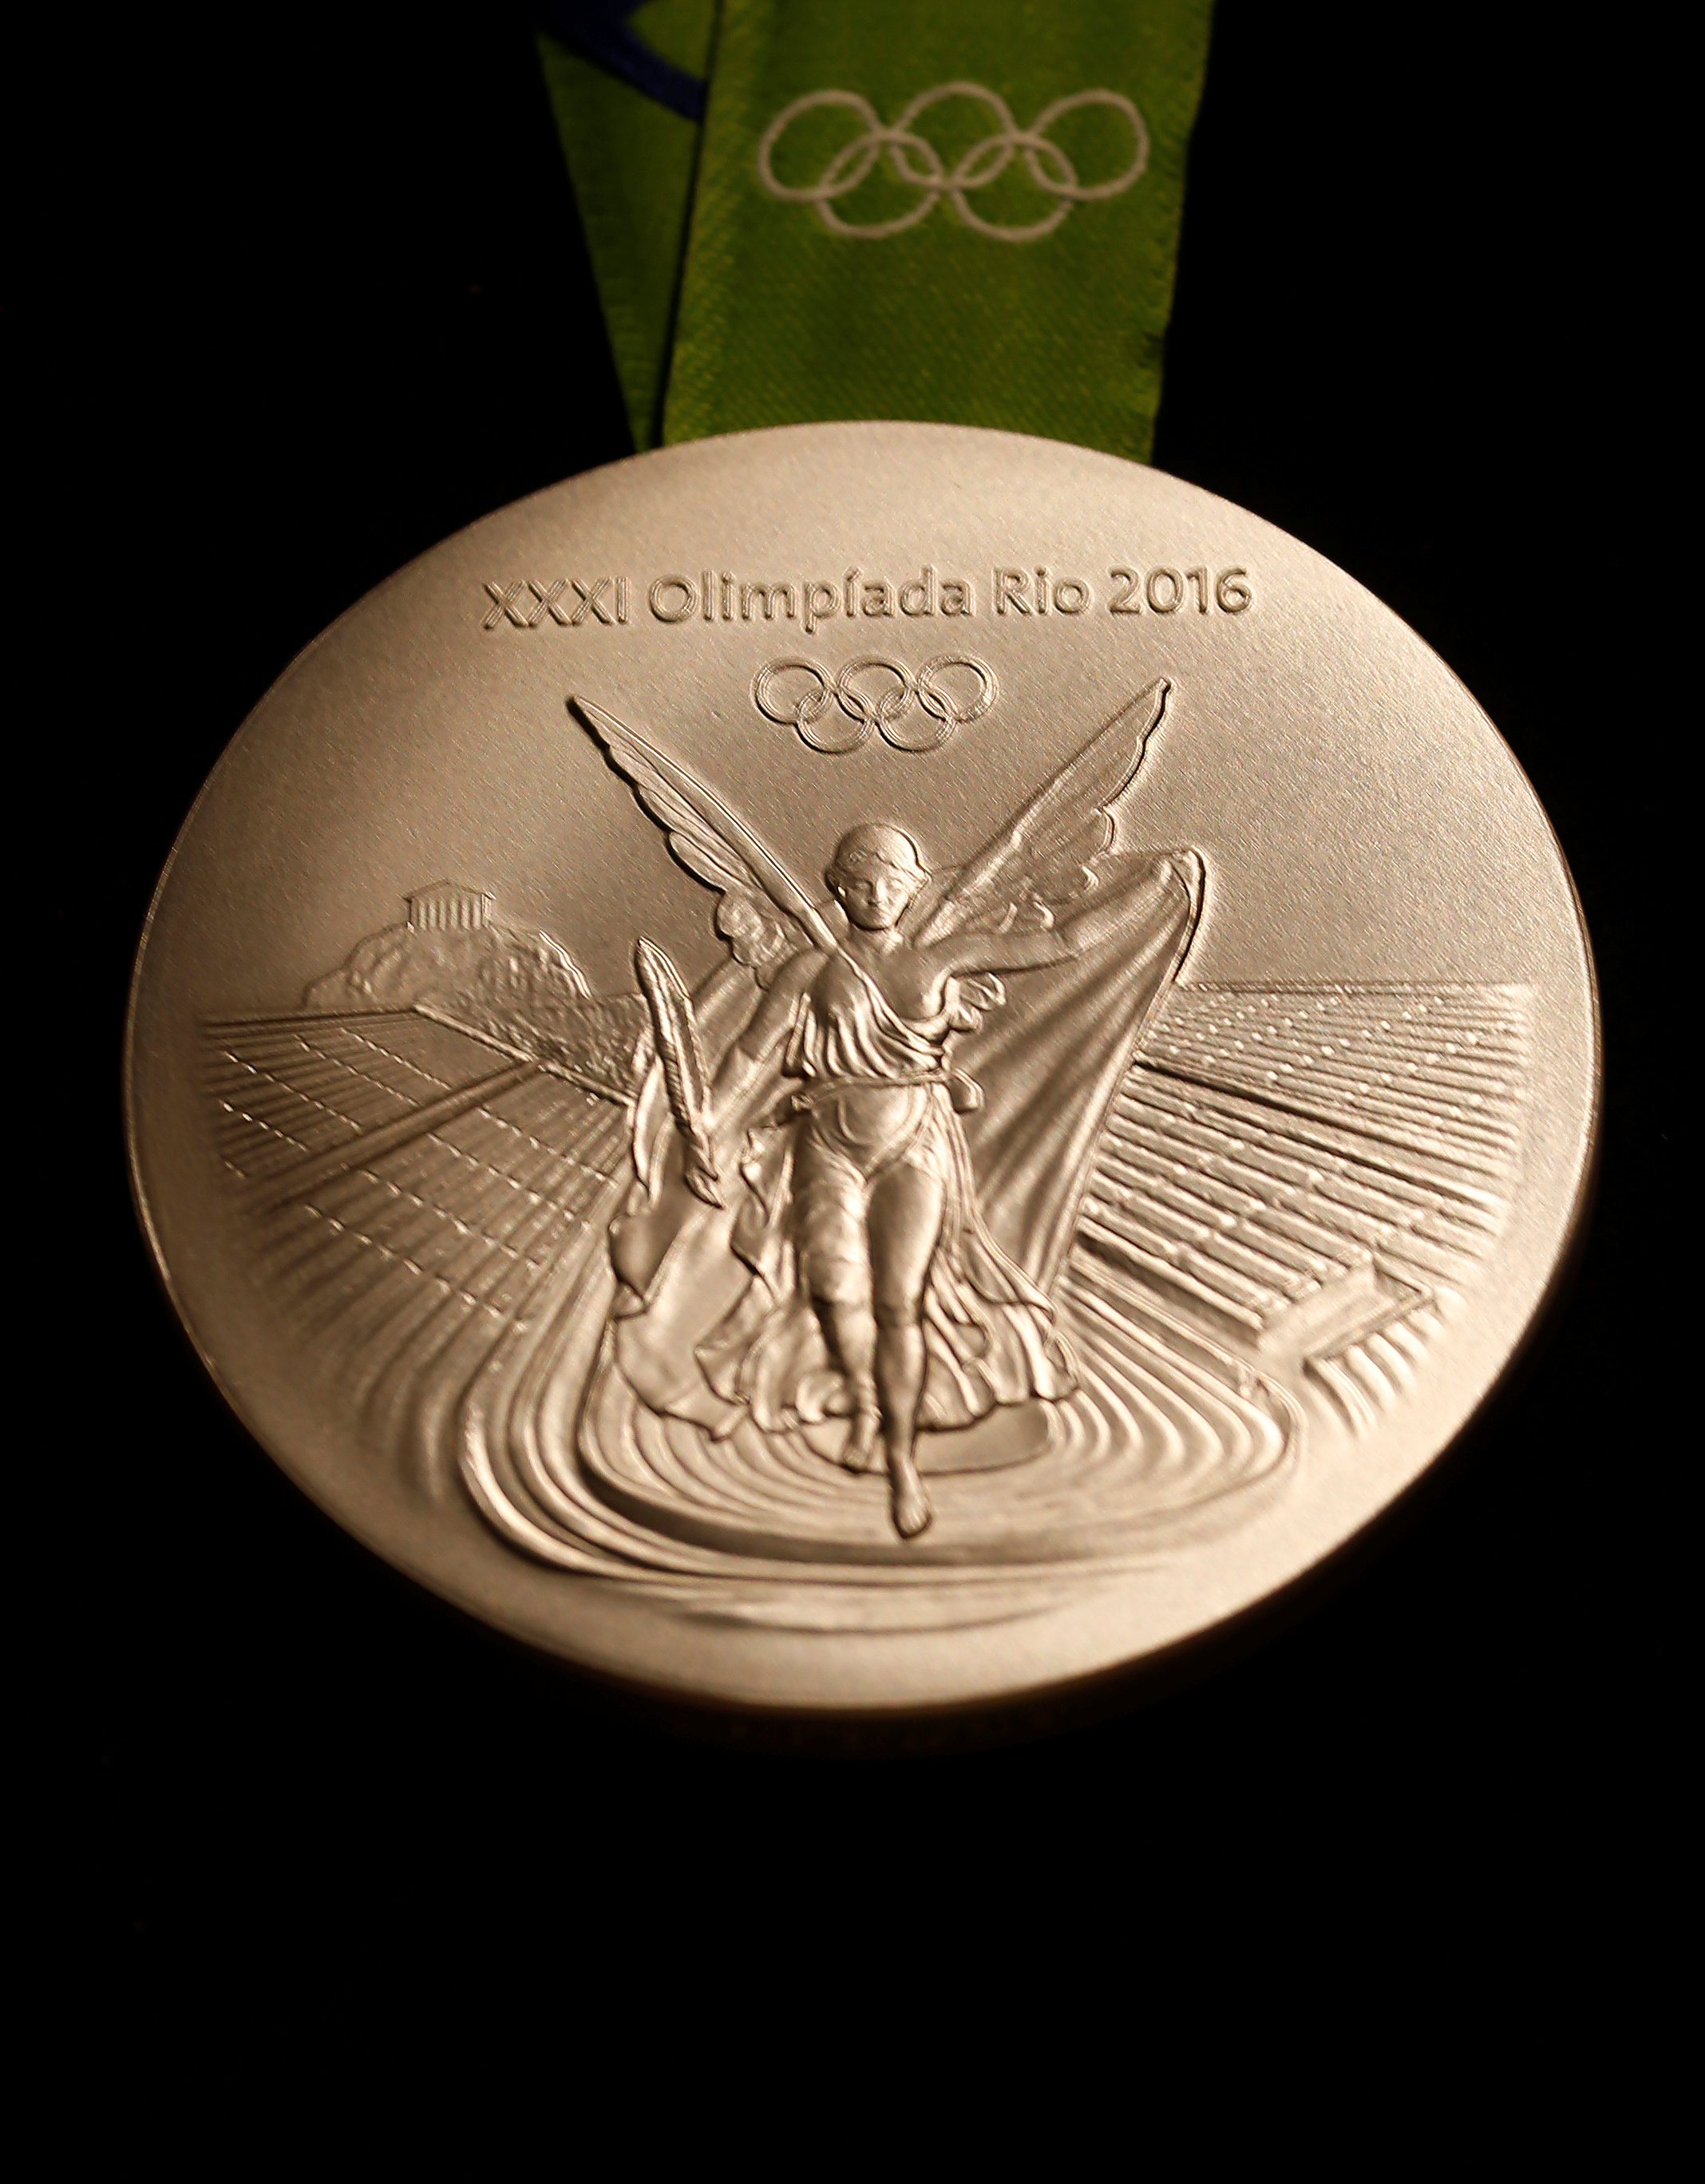 The Rio 2016 Olympic silver medal (Reuters/Sergio Moraes)